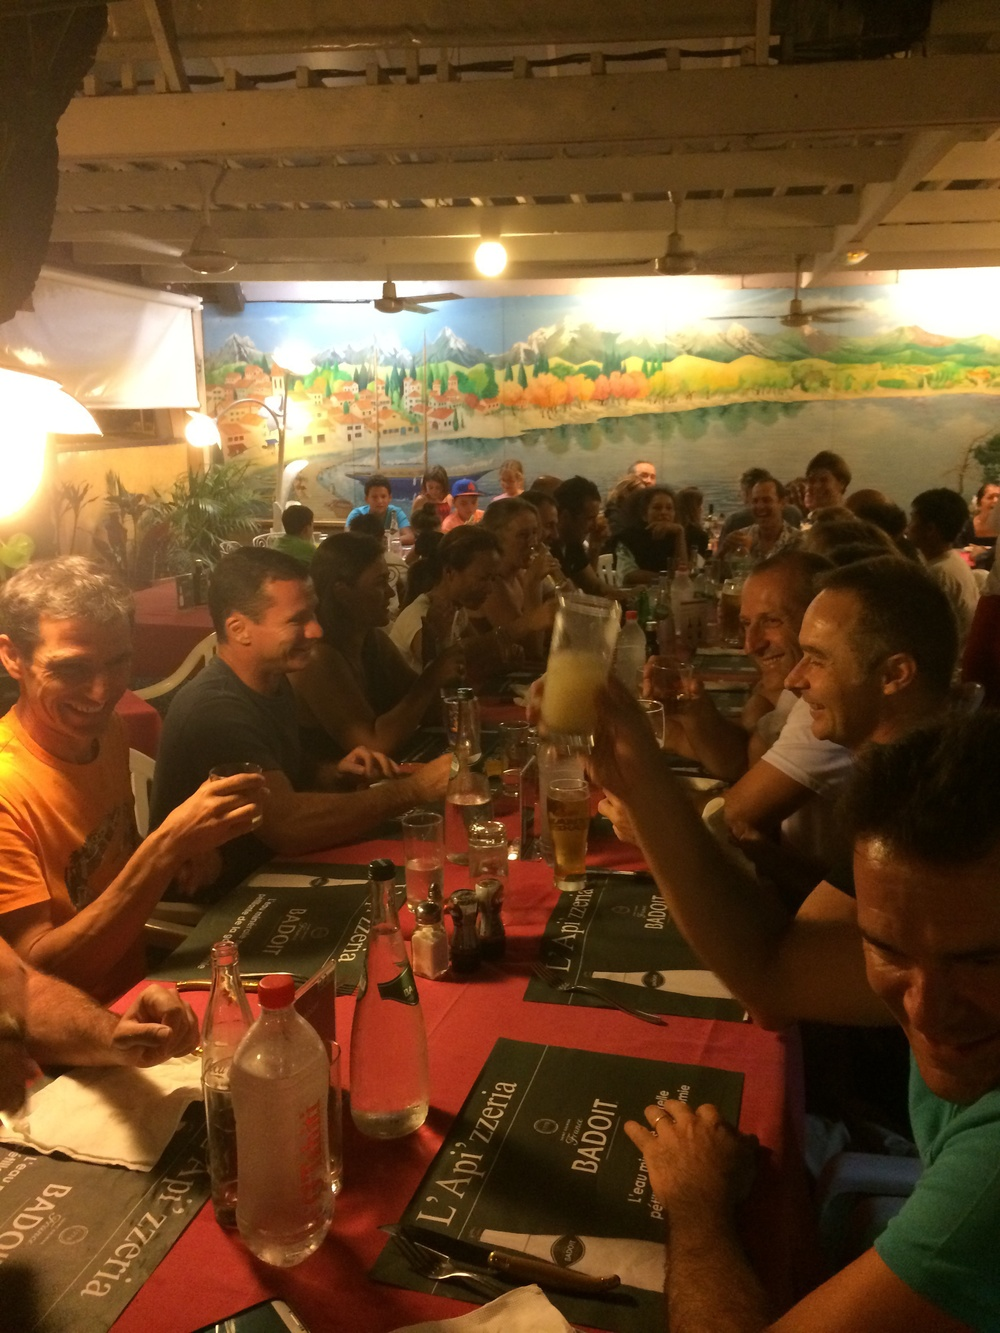 Dinner for 30 of the crew at the local spot, L'Apizzeria